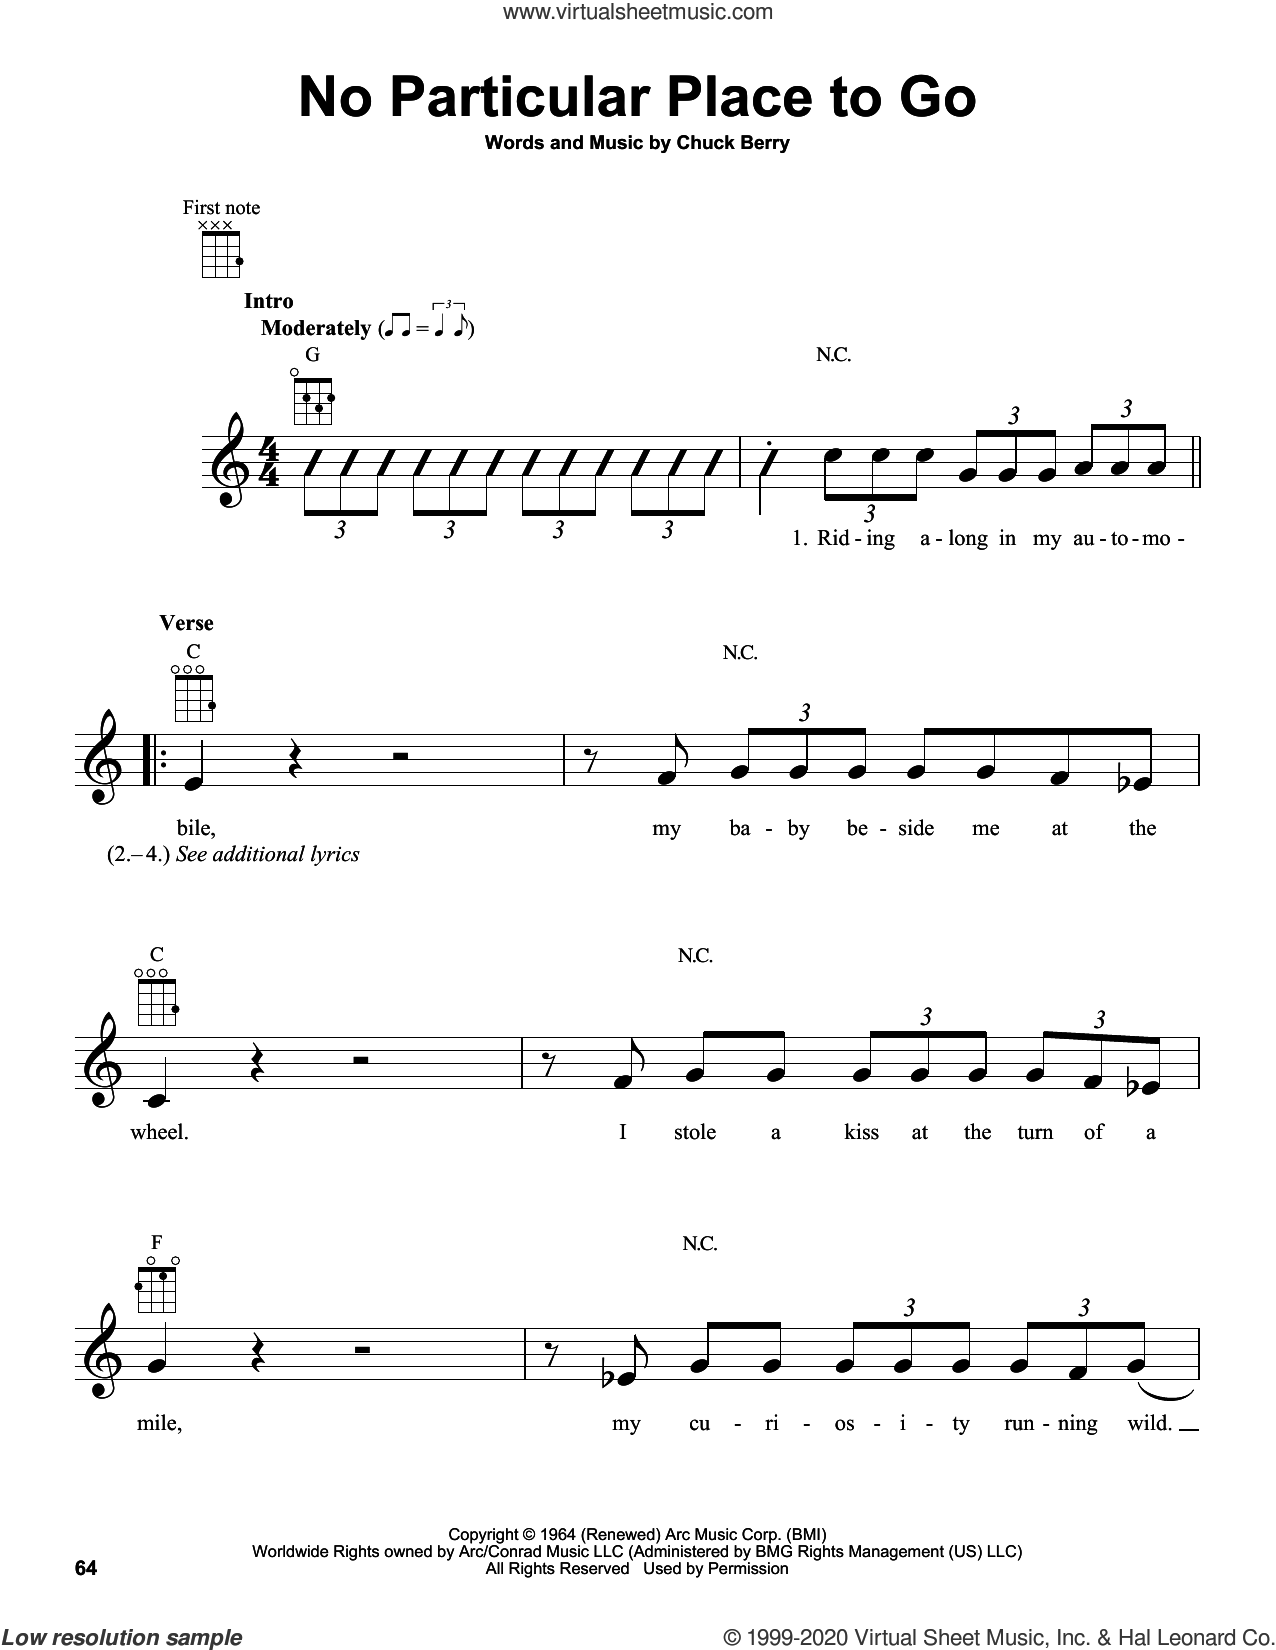 No Particular Place To Go sheet music for ukulele by Chuck Berry, intermediate skill level